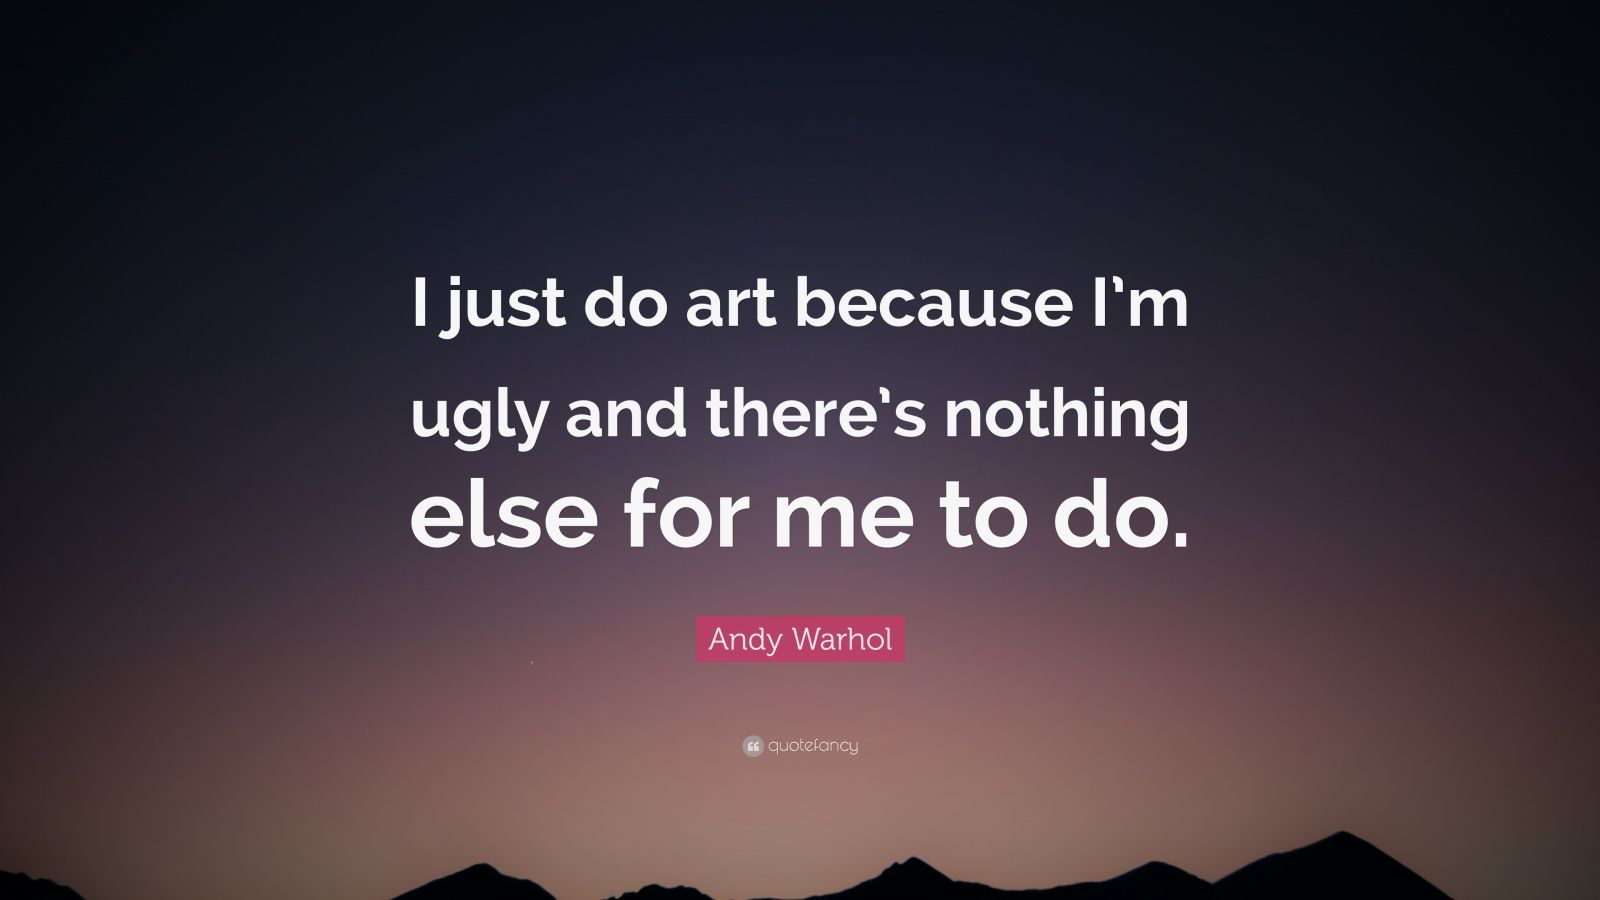 Andy Warhol Quotes Fascinating Andy Warhol Quotes 100 Wallpapers  Quotefancy